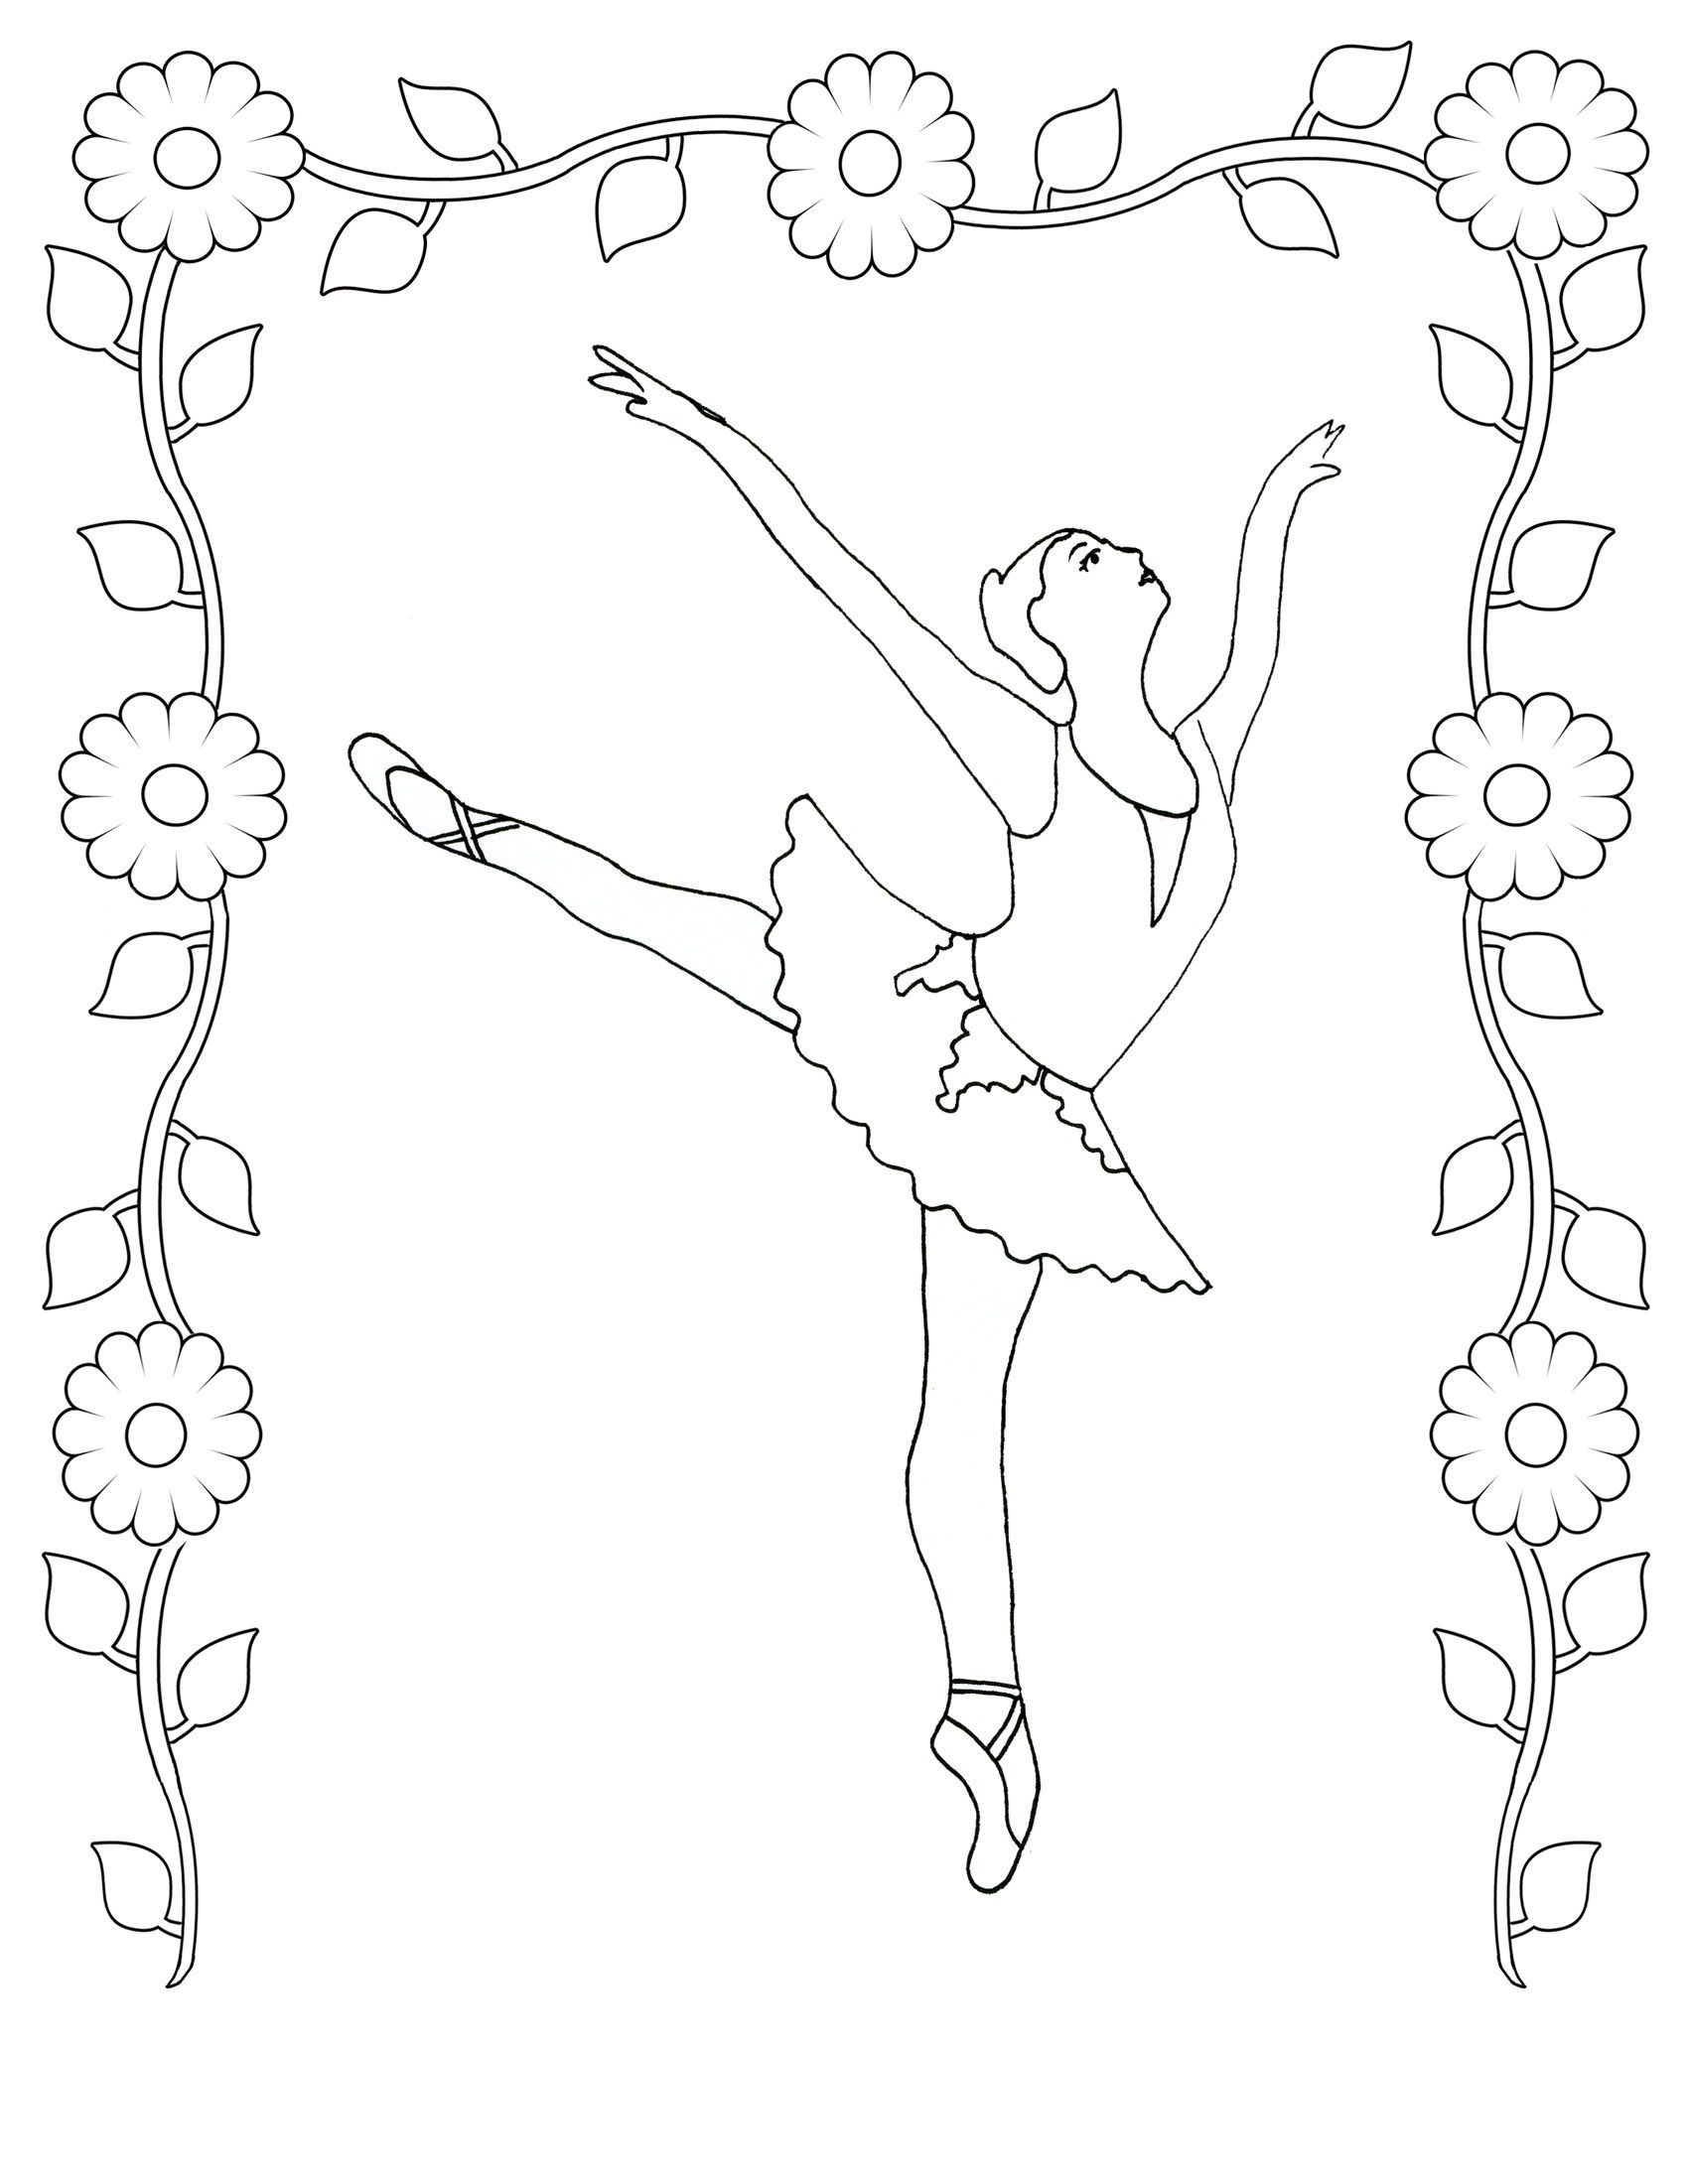 Coloring pages ballerina - Coloring Pages Realistic Ballet Colouring Pages Angelina Ballerina